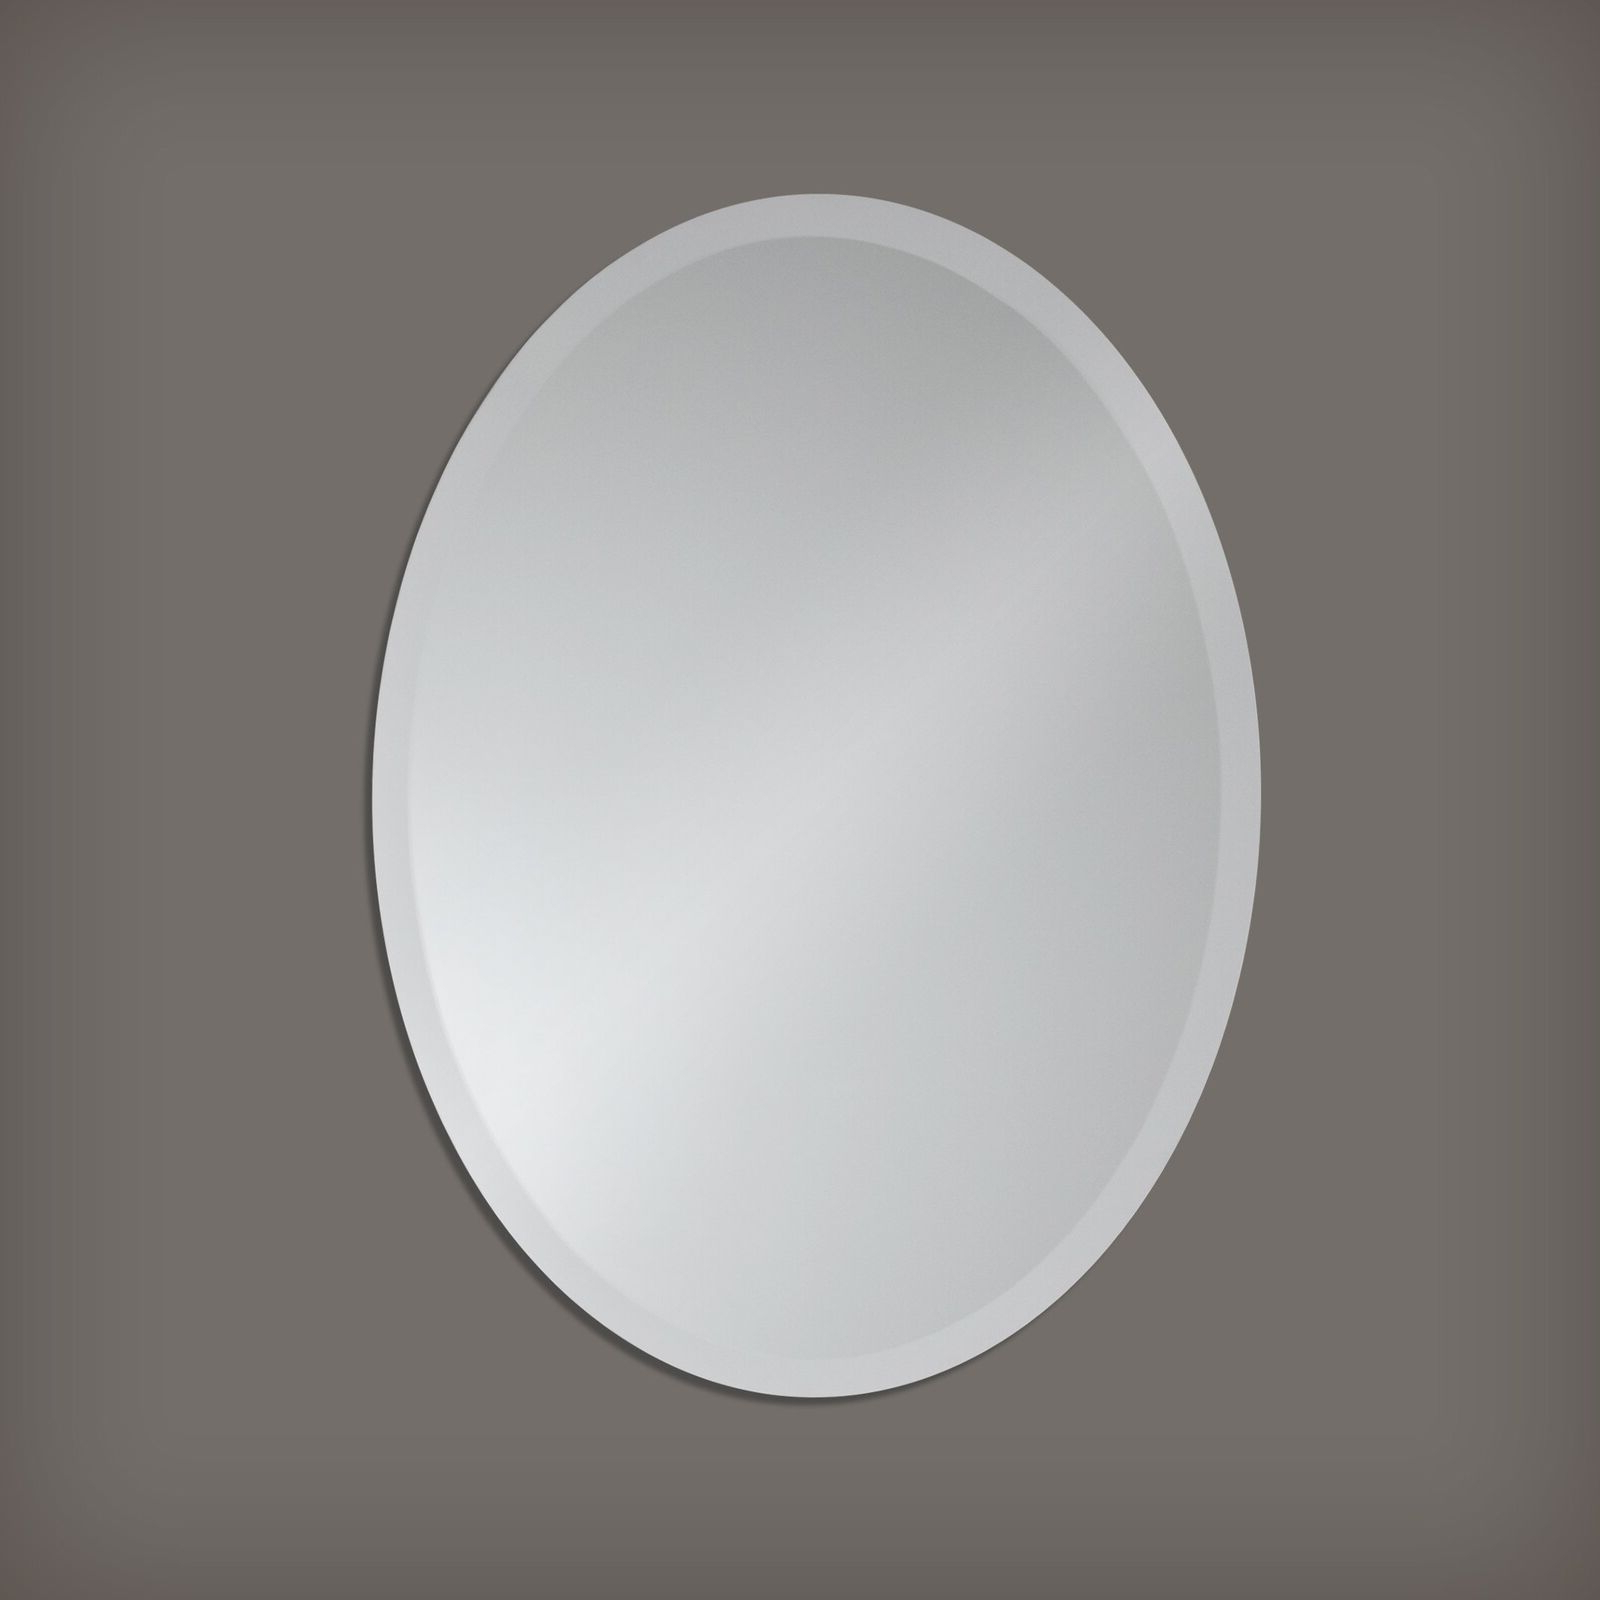 Small Frameless Beveled Oval Wall Mirror Bathroom, Vanity, Pertaining To Current Thornbury Oval Bevel Frameless Wall Mirrors (View 11 of 20)